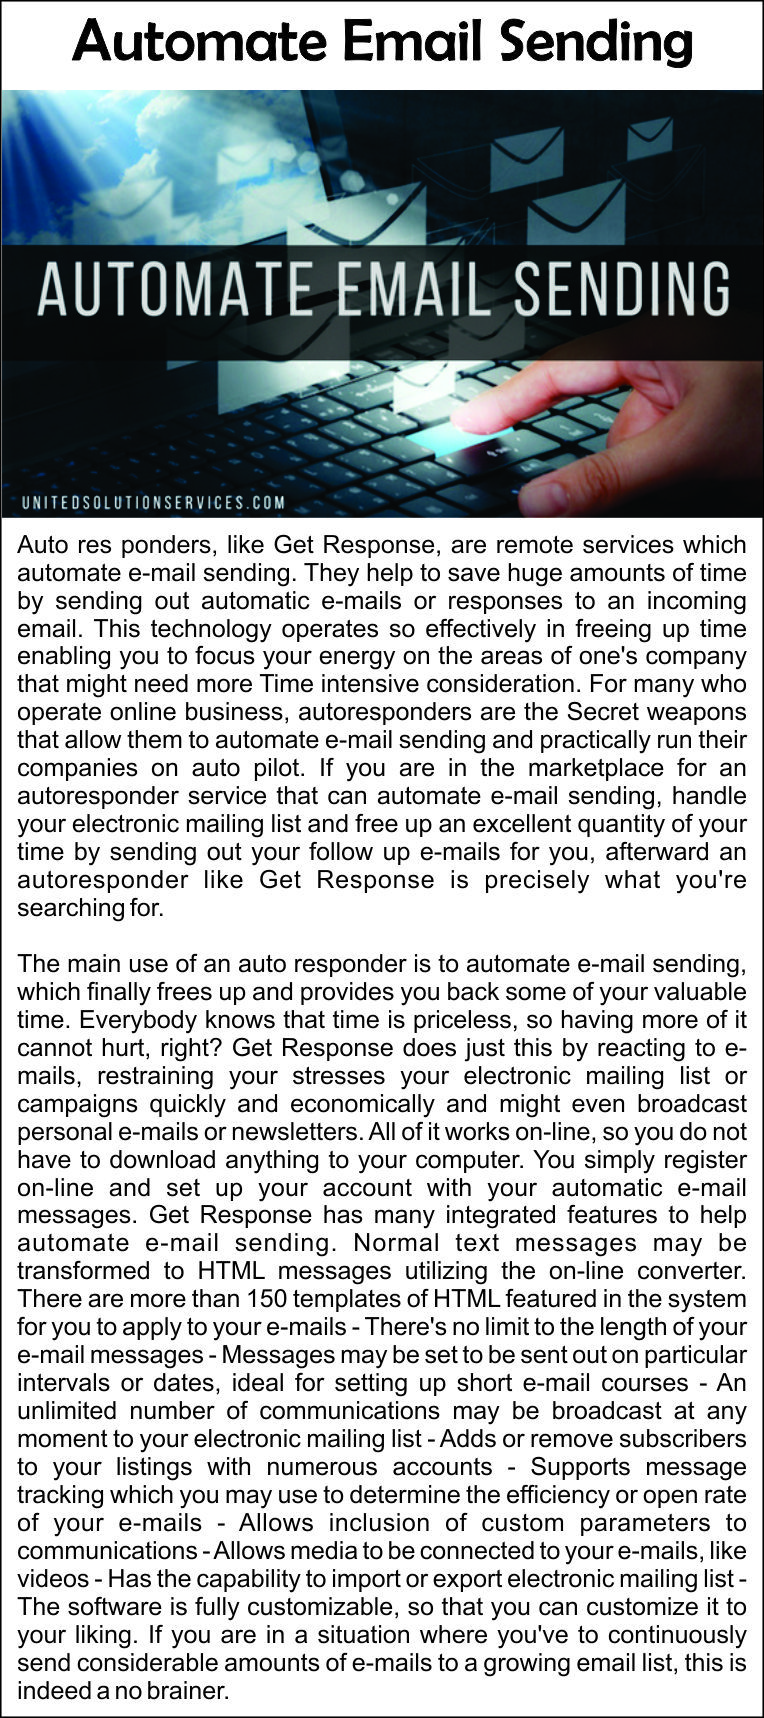 automate #email #sending #electronic #mailing #list #emails #time